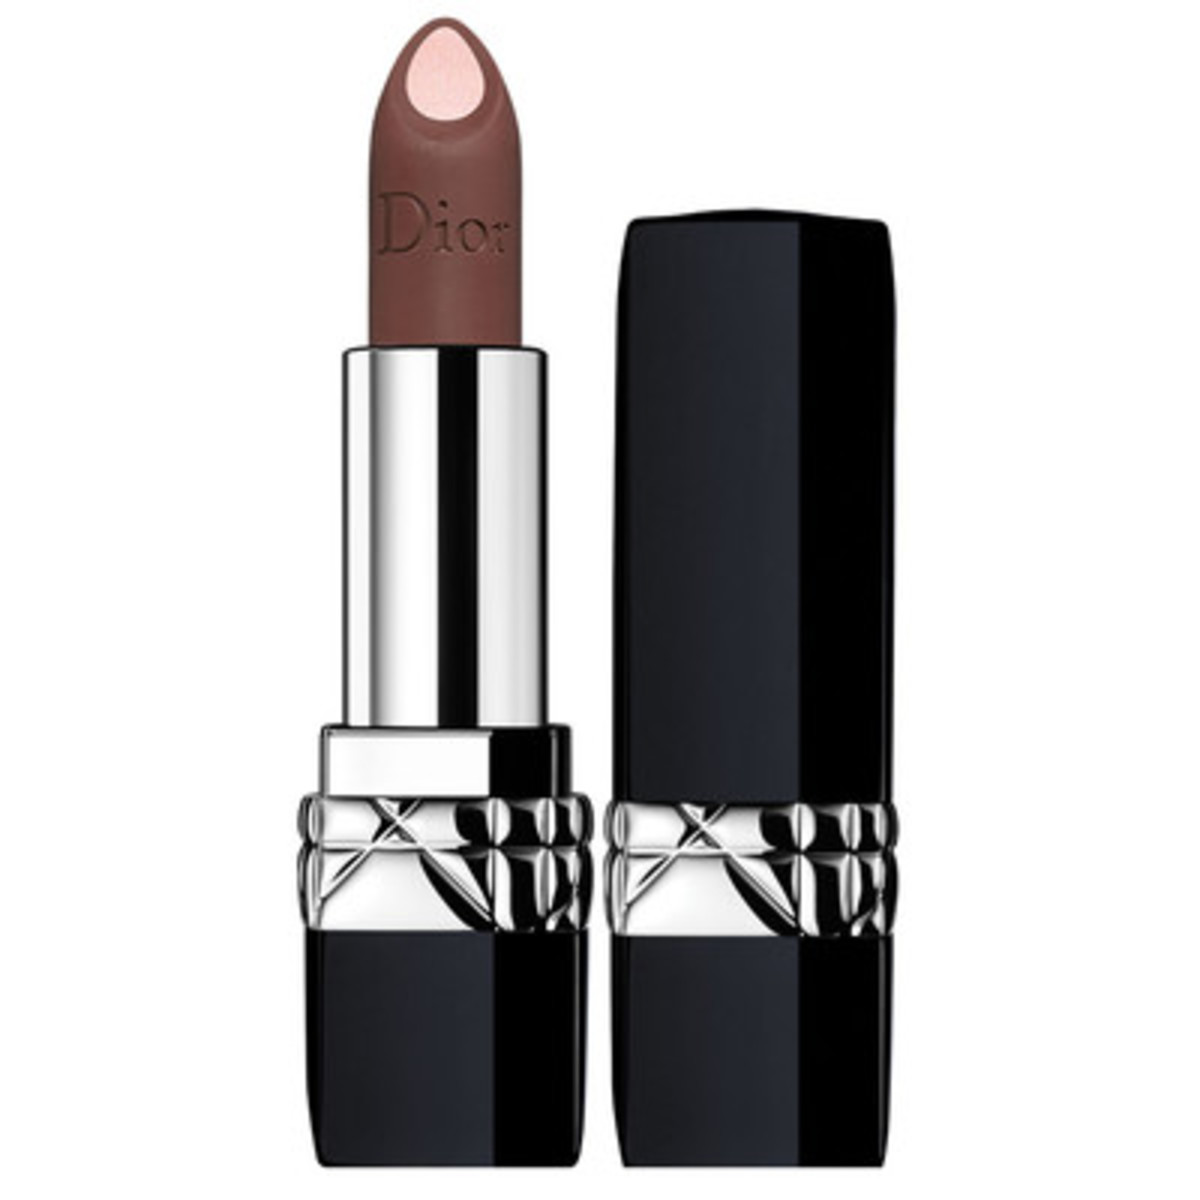 Rouge Dior Double Rouge Matte Metal Color 3.5g #510 [Parallel Import]